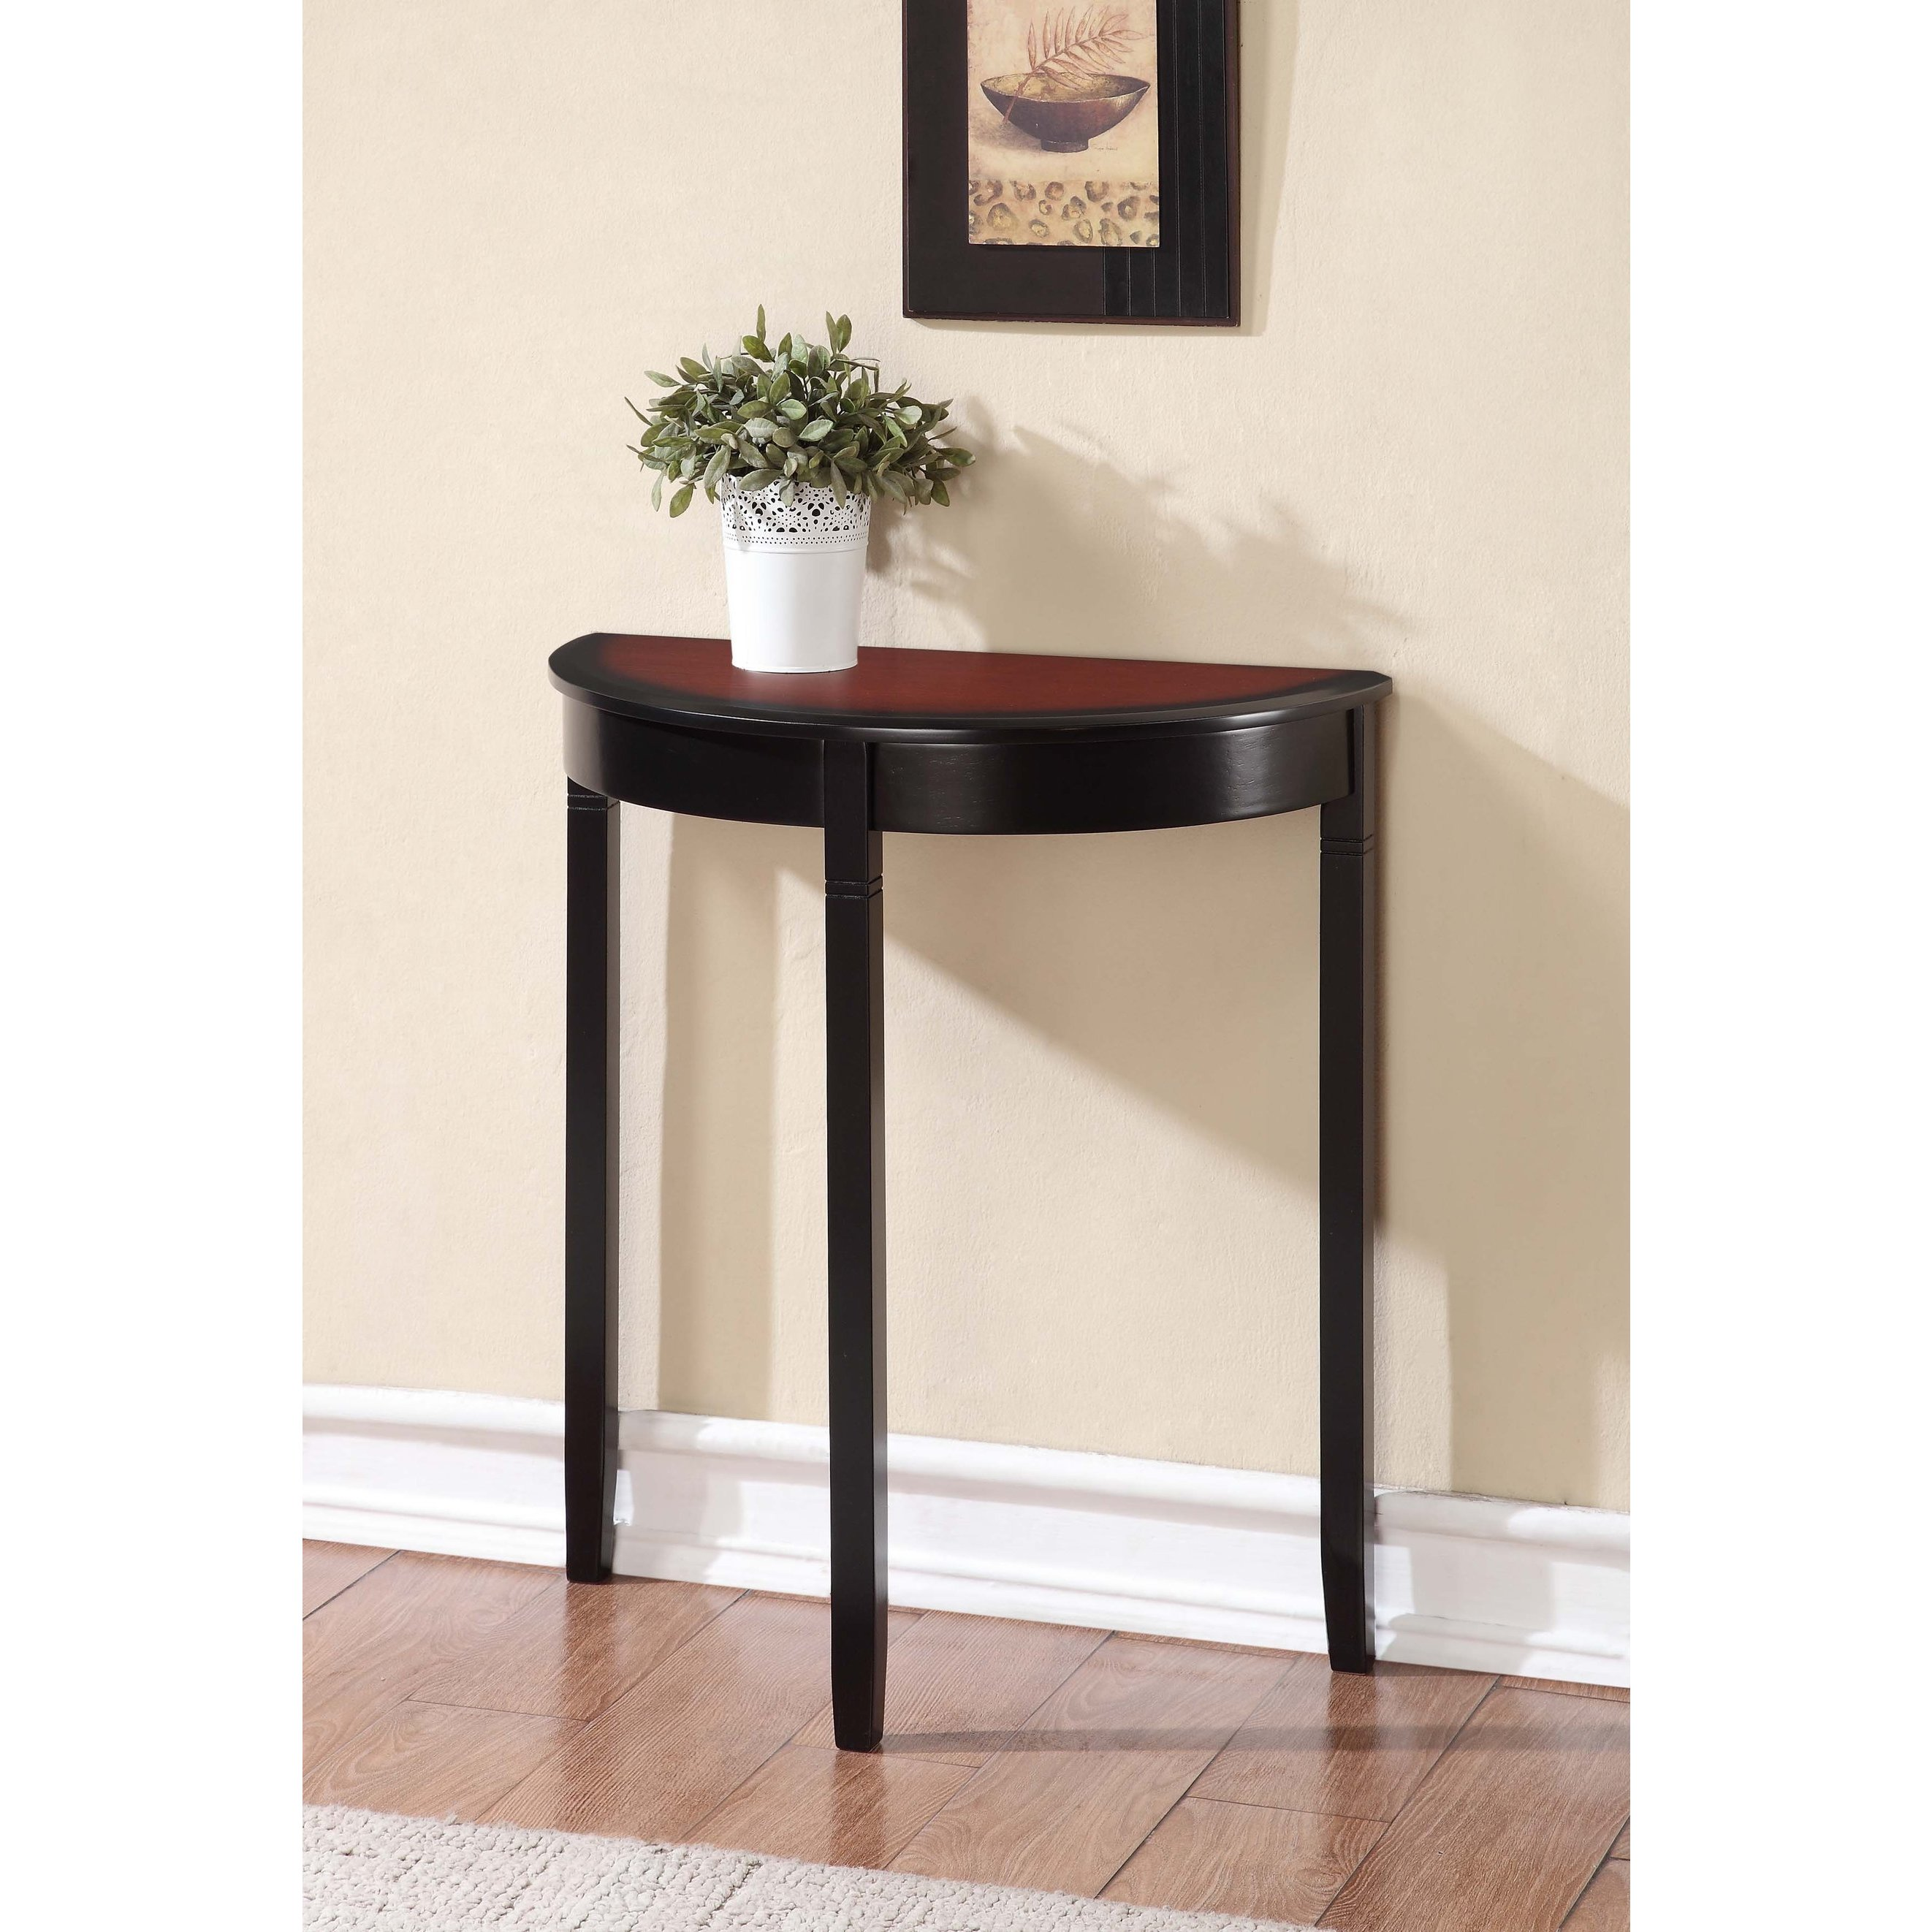 lovable hallway accent table with brilliant black console devon lacquered half round bath and beyond futon small occasional super thin slim lamp grey placemats stained glass light